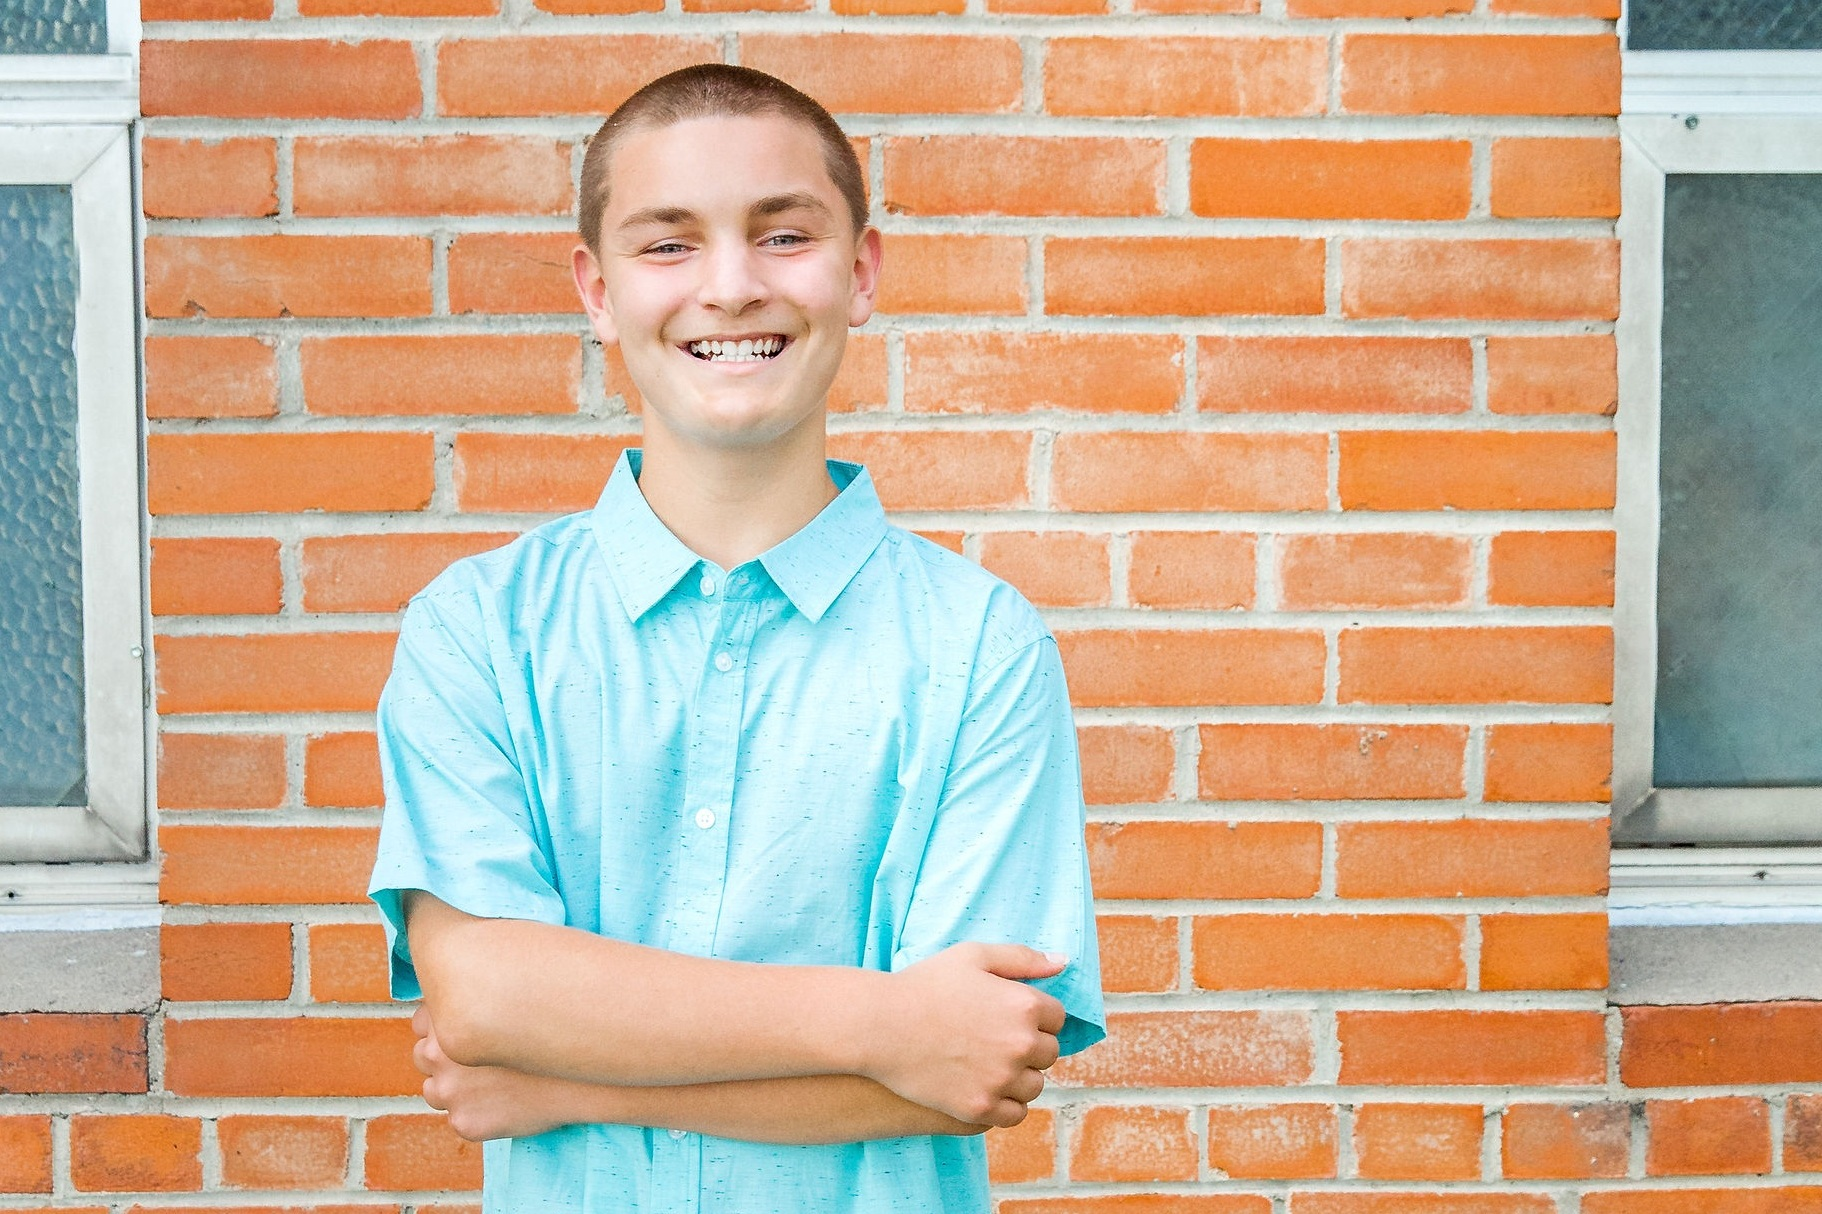 Jacob - Jacob has spent 8 of his 15 years in foster care. He enjoys children and animals, and would love a family to play games with, younger siblings, a cat, AND a dog.